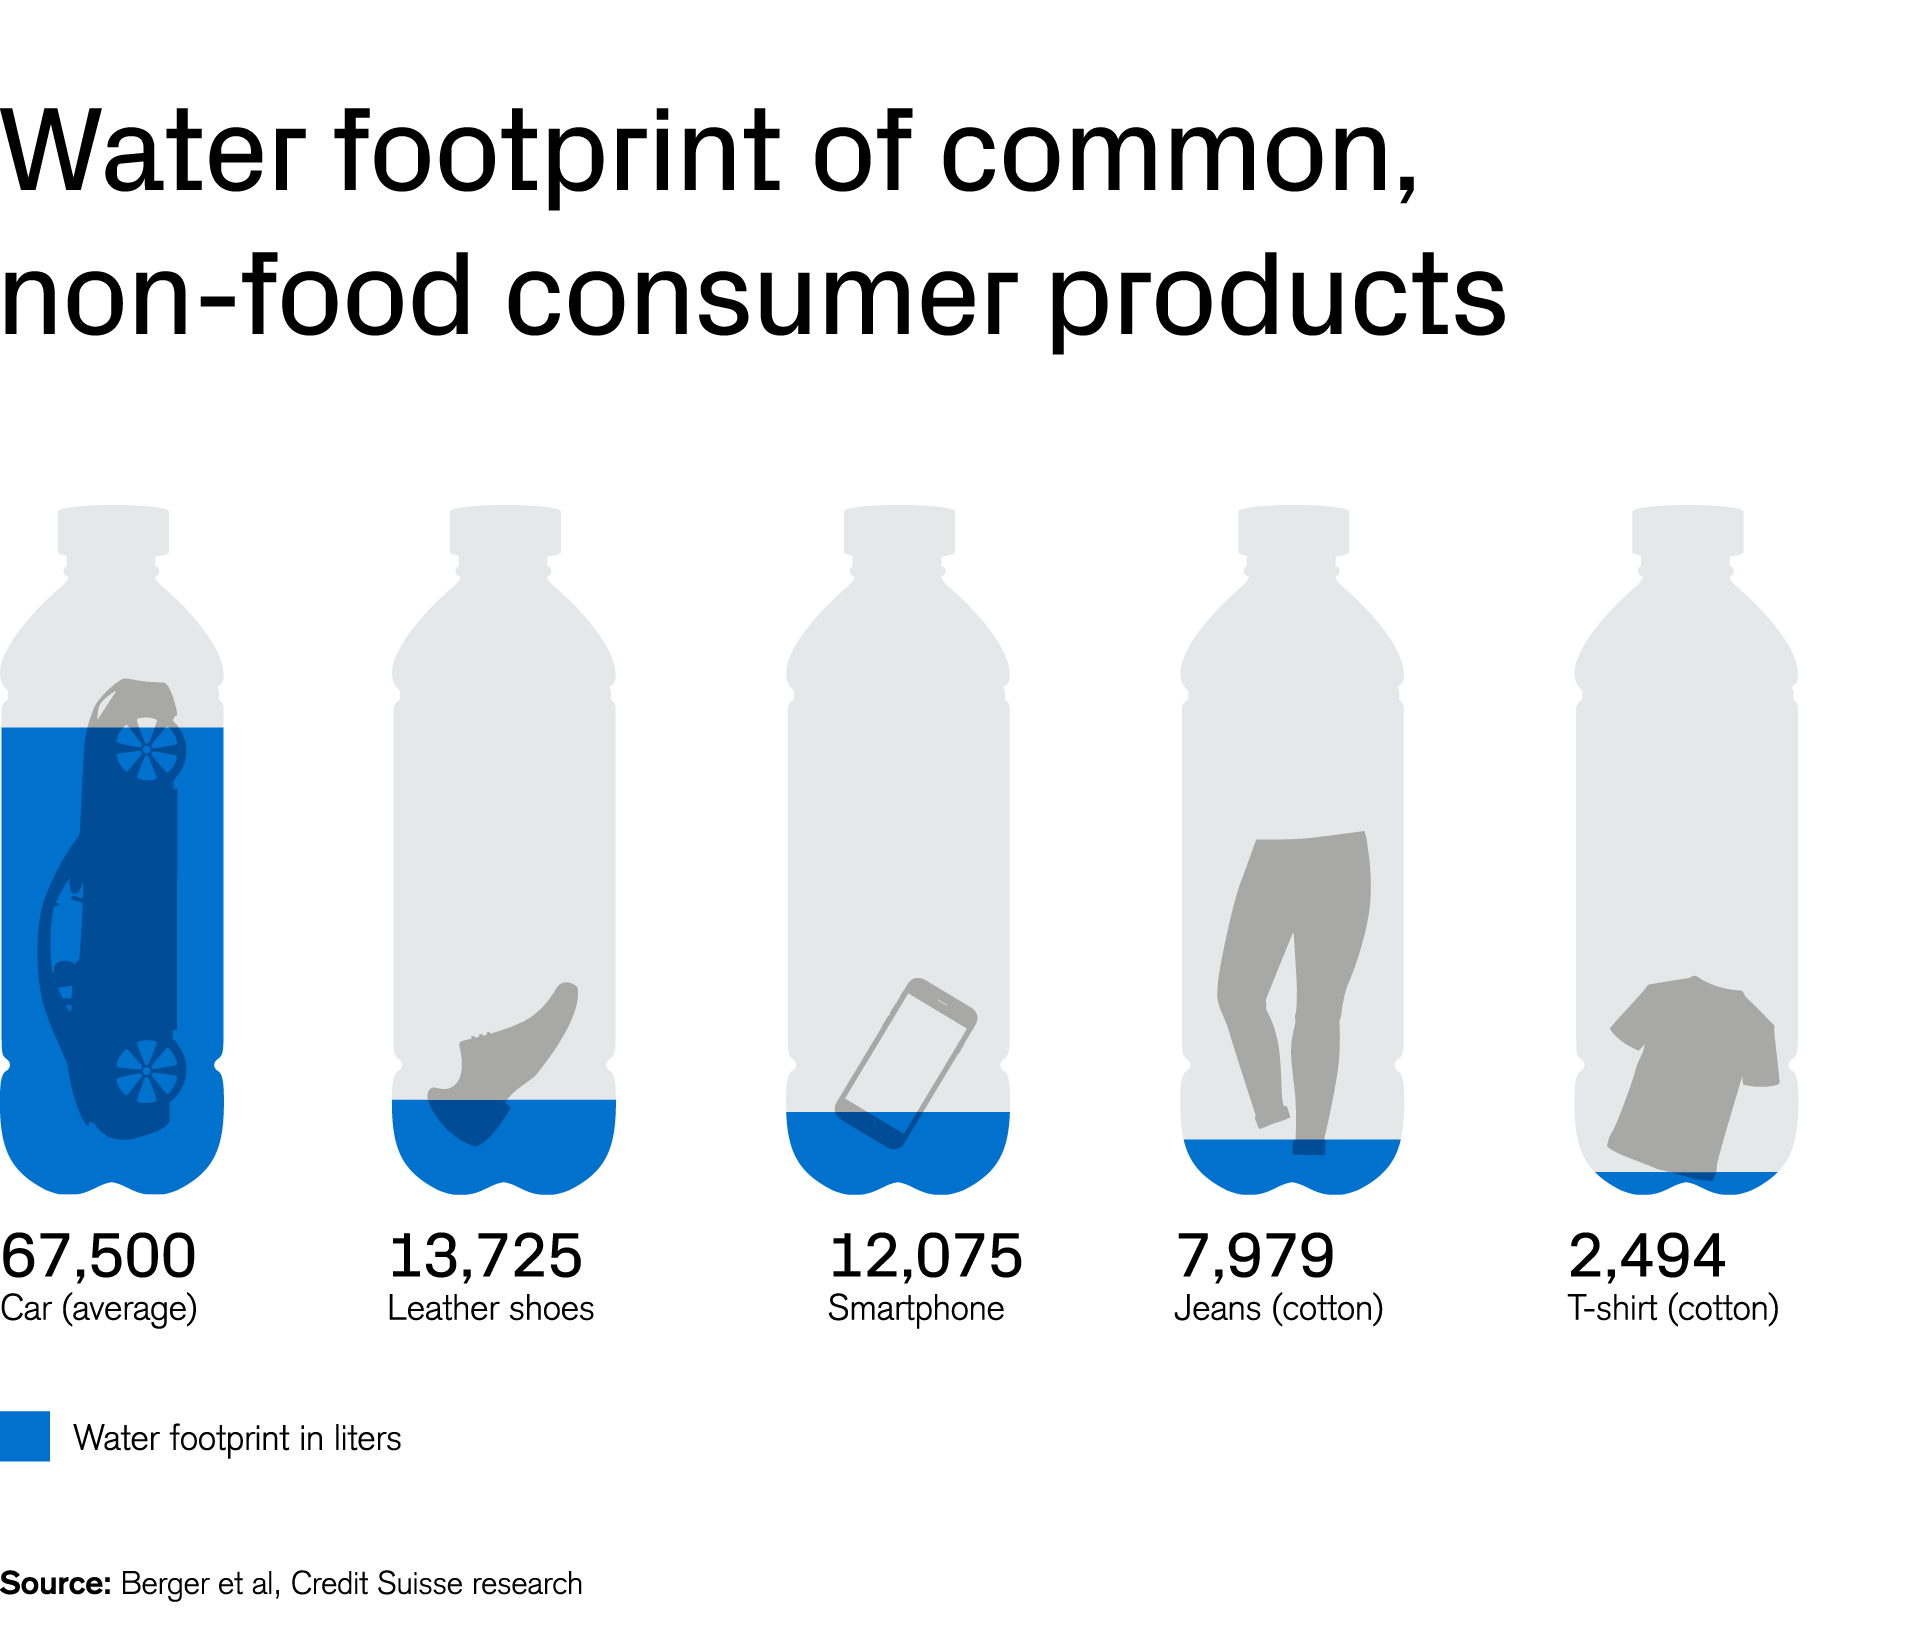 Water footprint of common, non-food consumer products